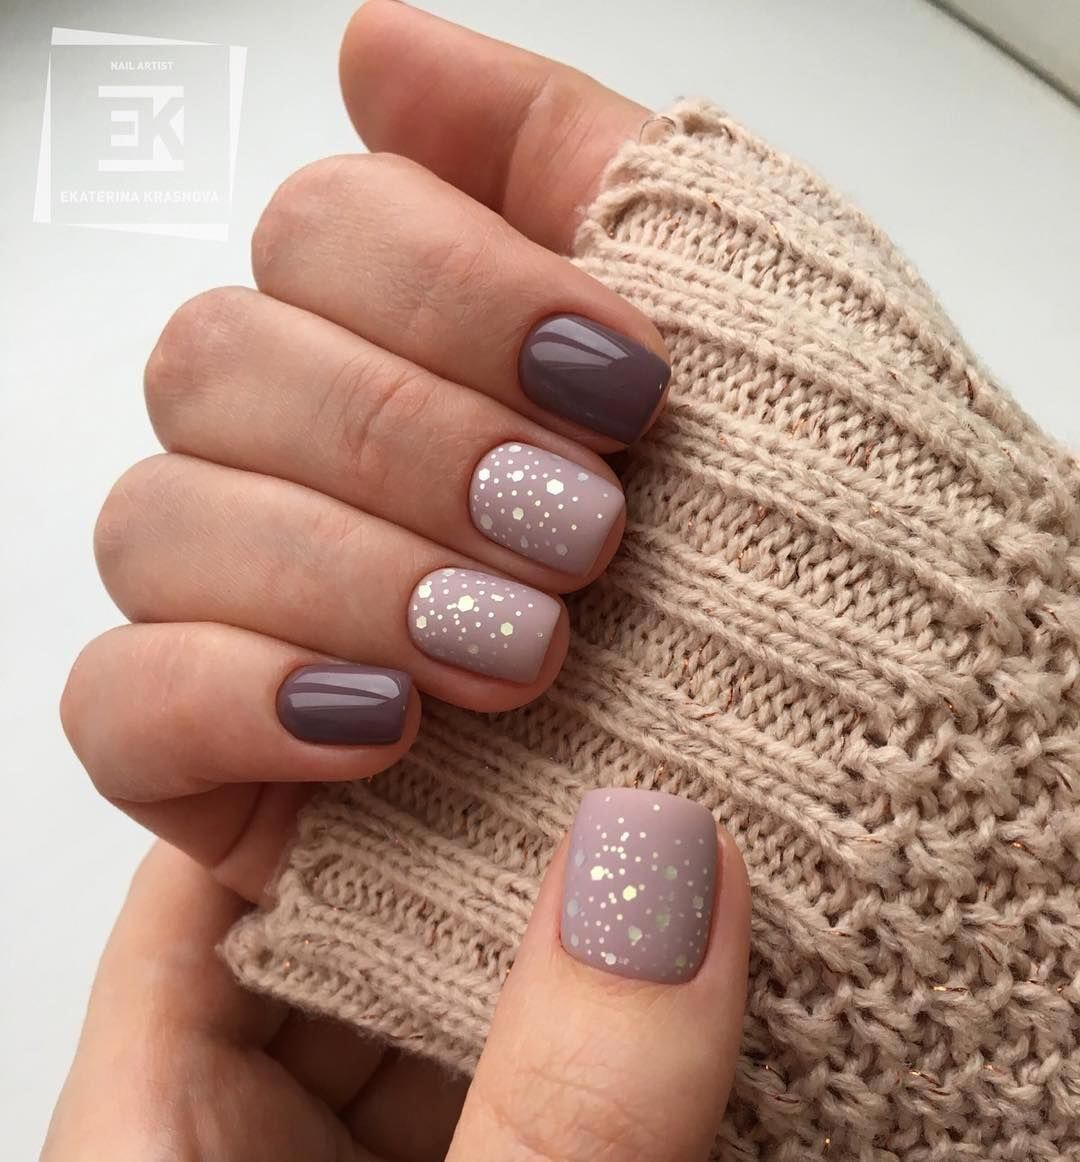 Are You Looking For Nail Colors Design For Winter See Our Collection Full Of Cute Winter Nail Colors Design Ideas And Nails Short Square Nails Fabulous Nails